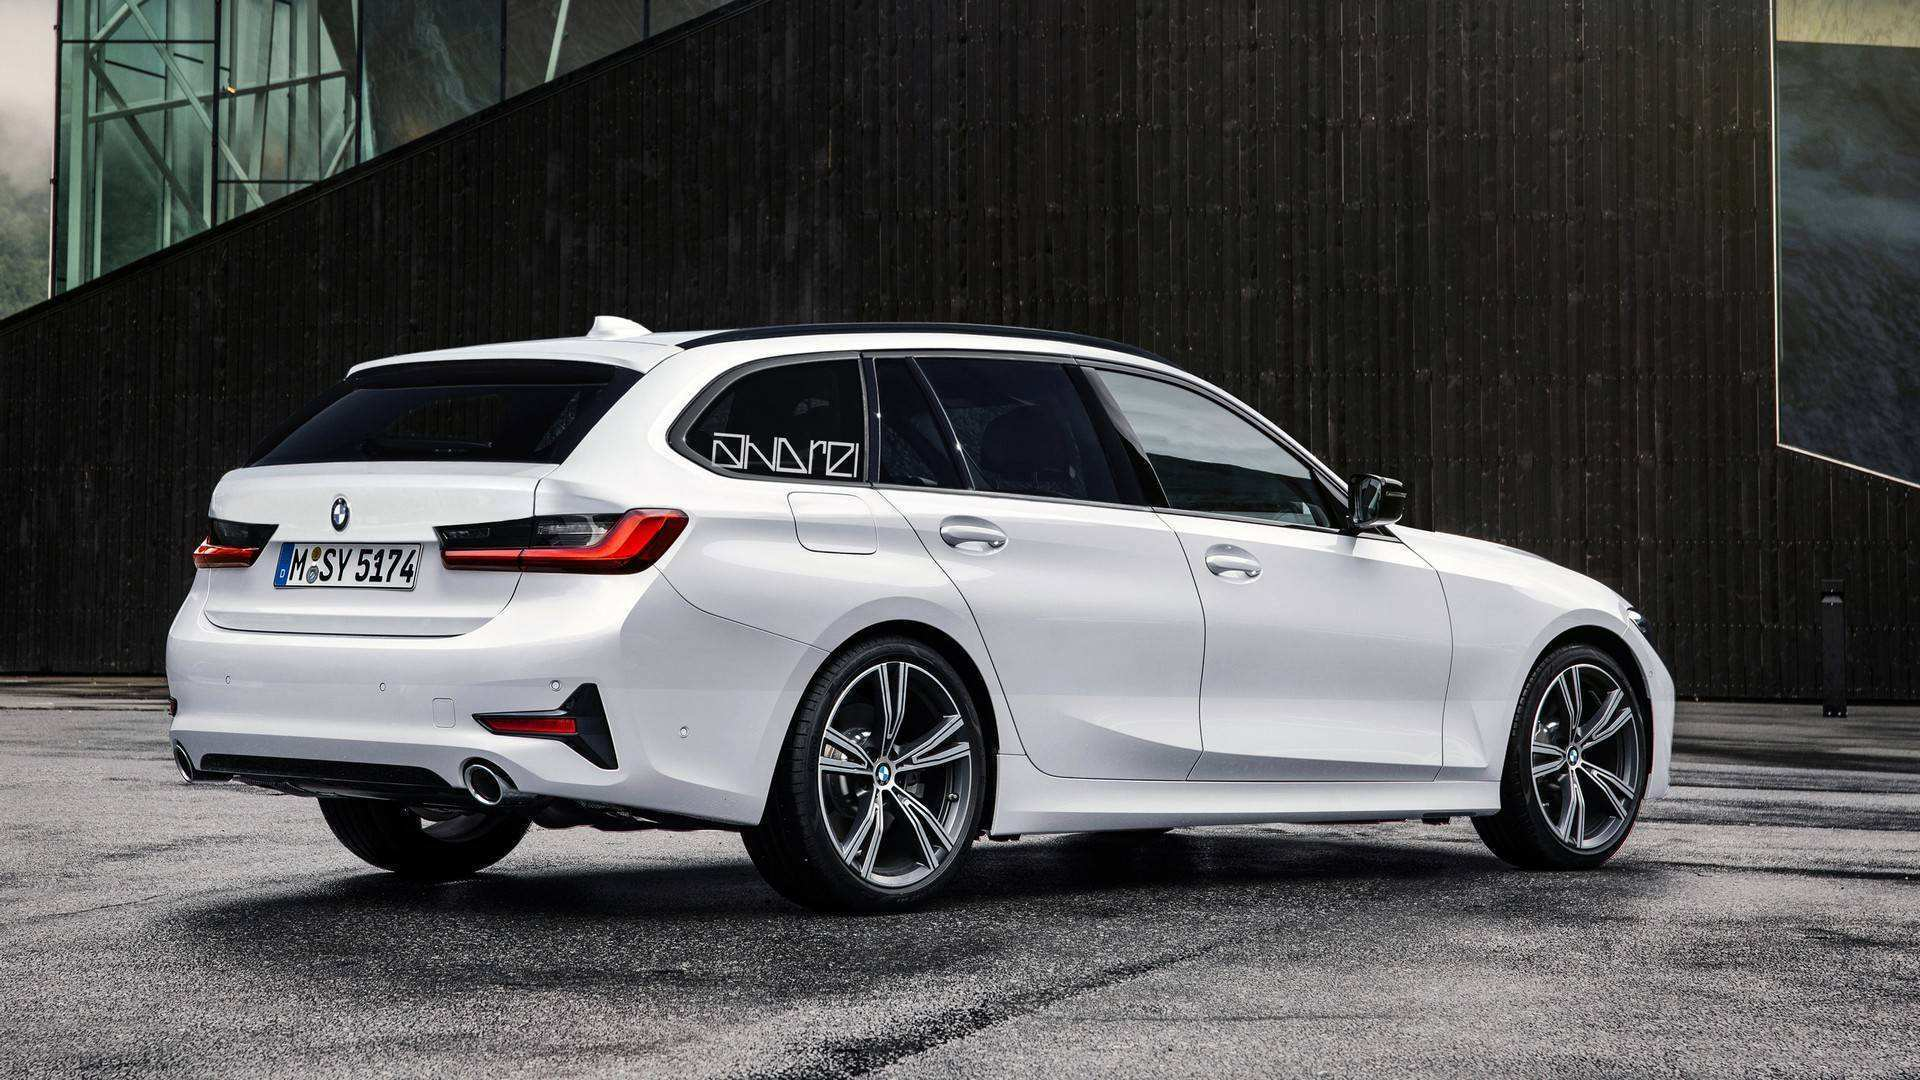 62 The 2020 BMW 3 Series Price Design And Review